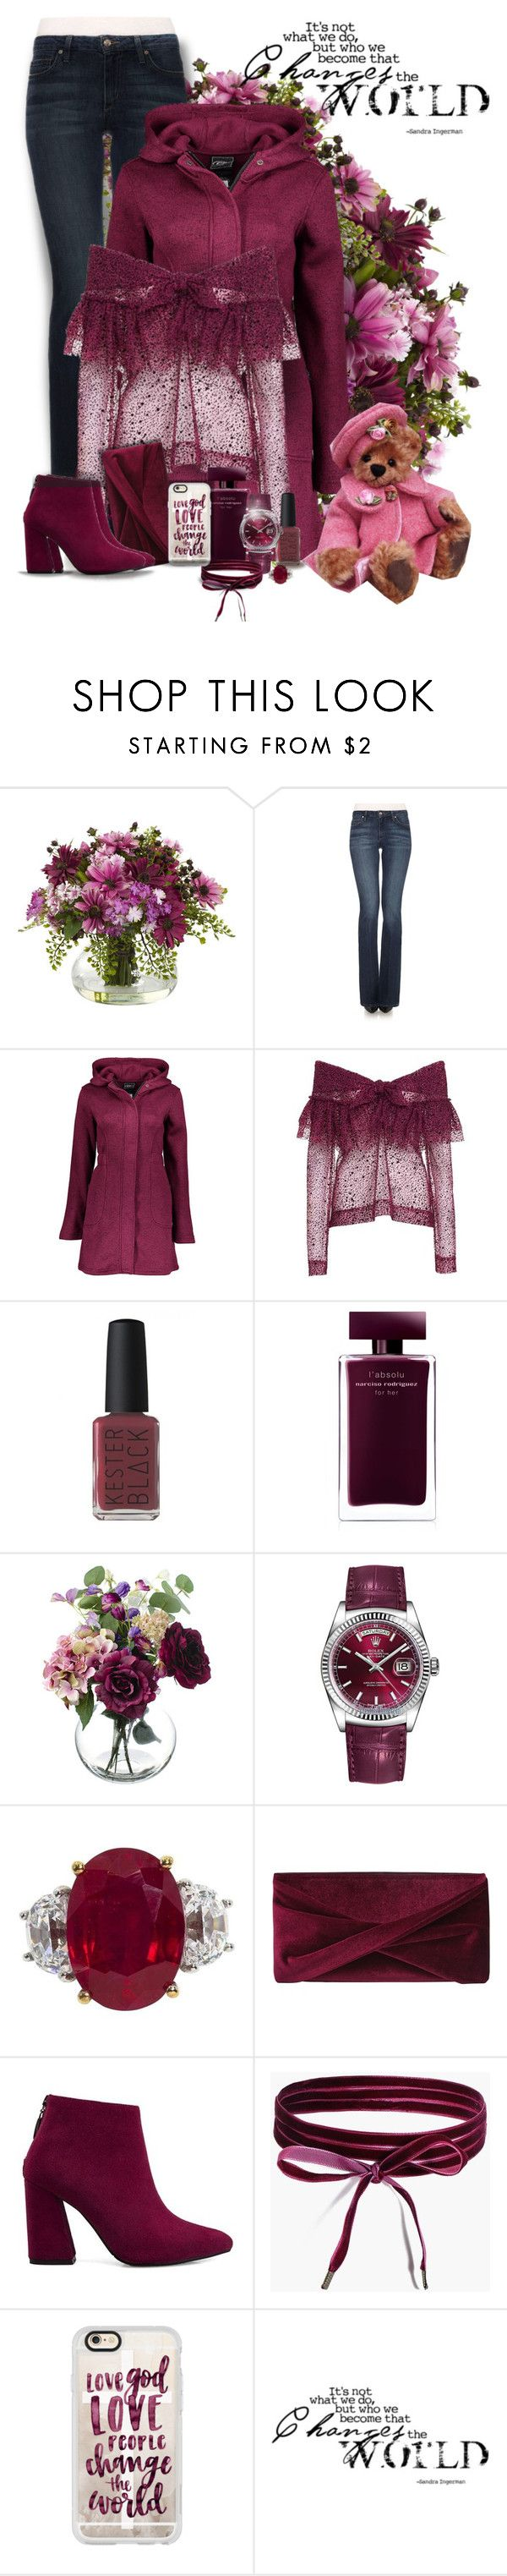 """""""Casual"""" by sugerpop ❤ liked on Polyvore featuring Joe's Jeans, Isa Arfen, Kester Black, Narciso Rodriguez, Rolex, Reiss, Boohoo and Casetify"""